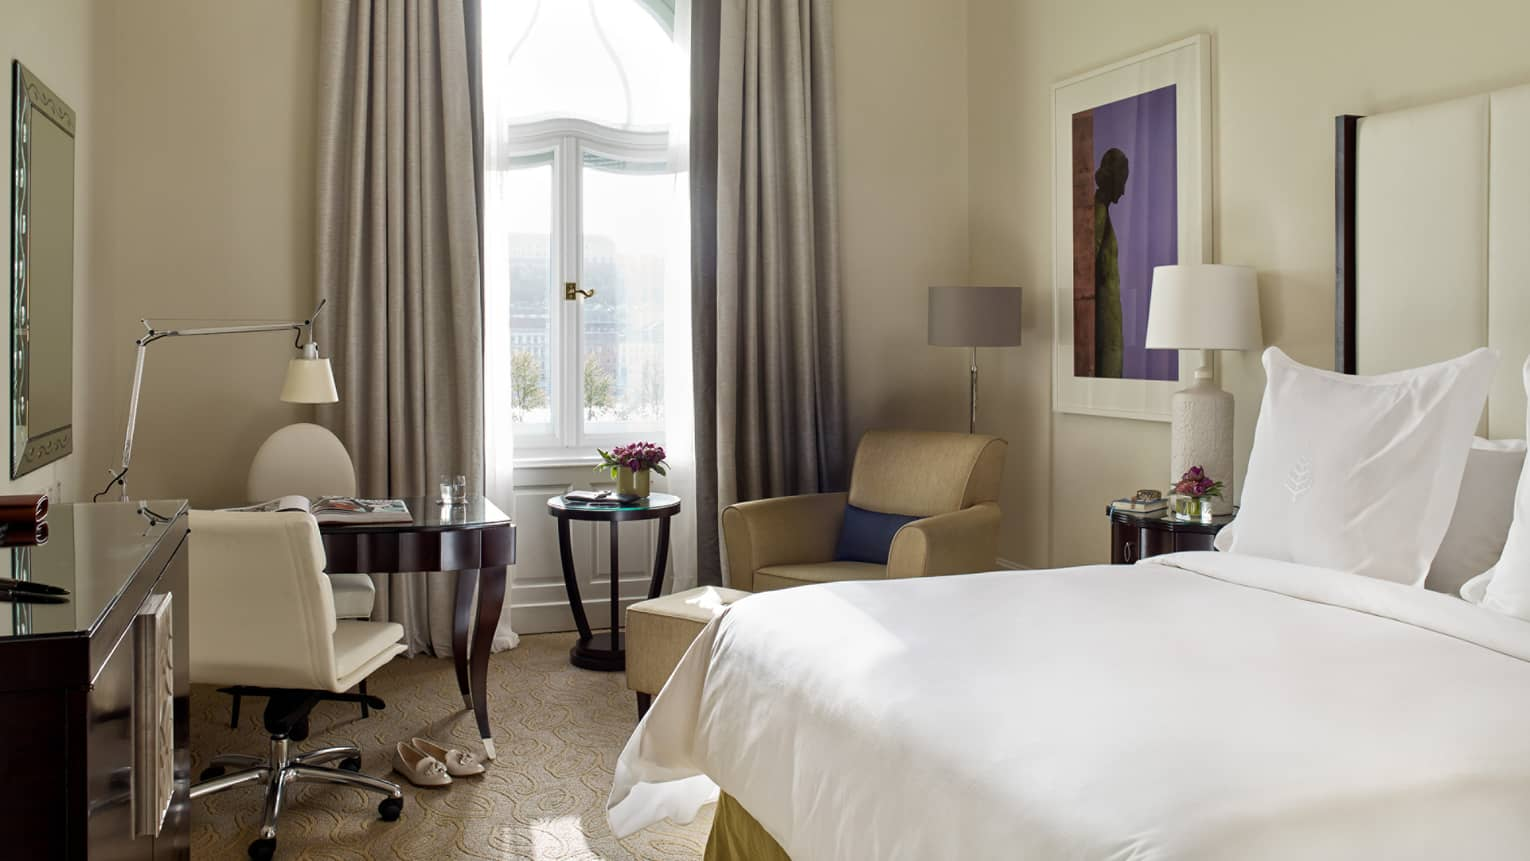 Danube River-View Room bed with white linens, cream-coloured desk chair and armchair, tall picture window, curtains